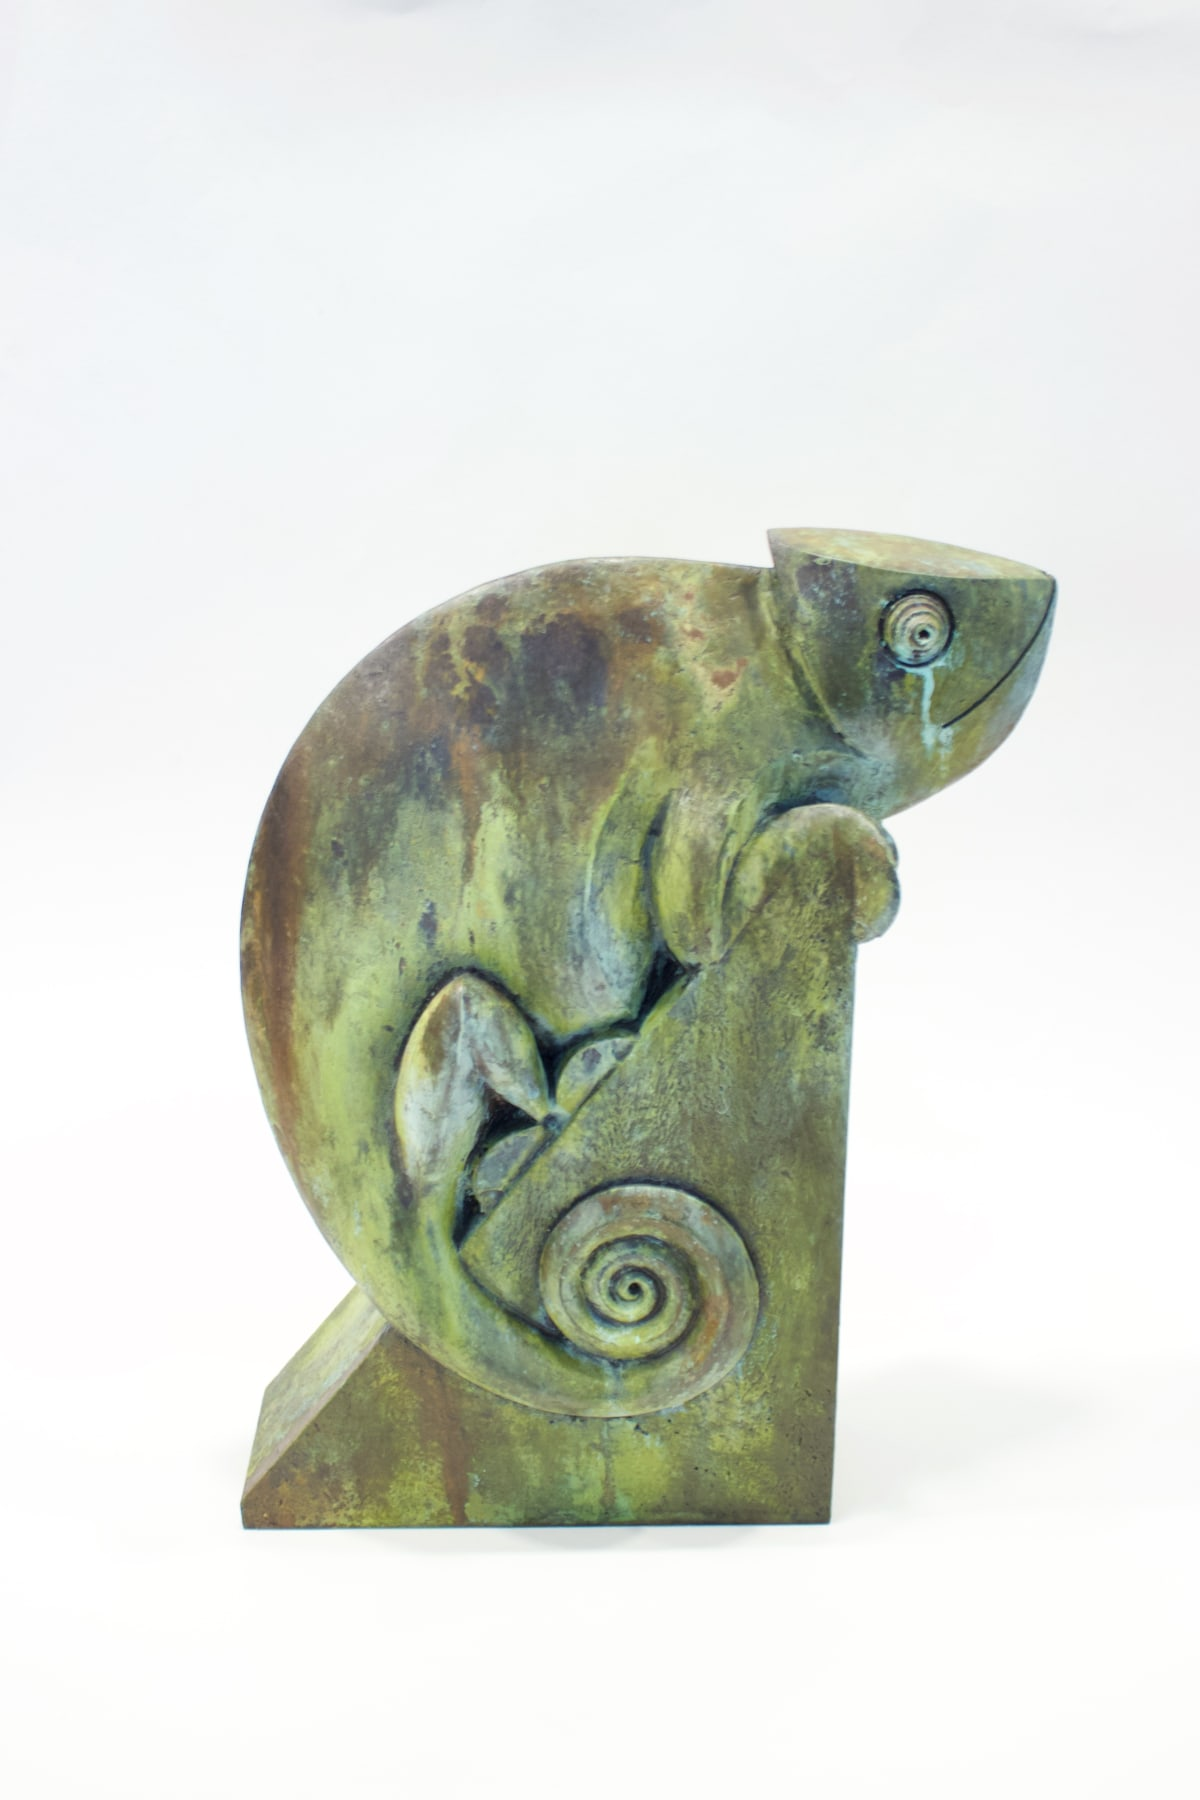 Paul Harvey Chameleon, 2019 Mixed Media Sculpture Patinated Bronze Resin 35 x 20 x 11.5 cm 13 3/4 x 7 7/8 x 4 1/2 in Open Edition